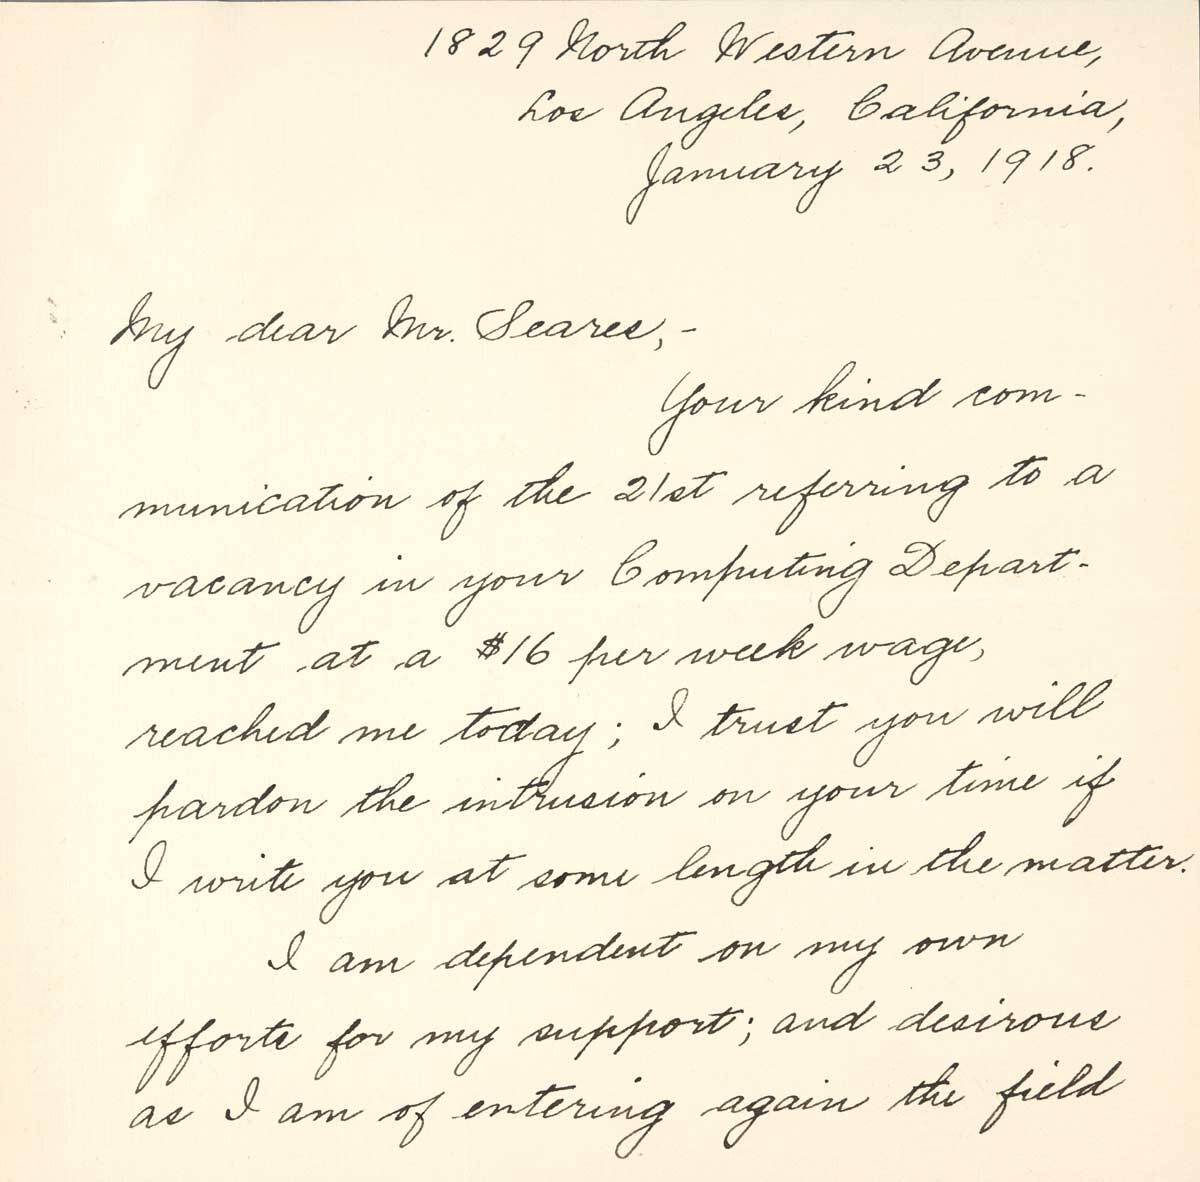 Letter from Betty Trier Berry to F.H. Seares of Mt. Wilson observatory p1 | Image courtesy of the Observatories of the Carnegie Institution for Science Collection at the Huntington Library, San Marino, California